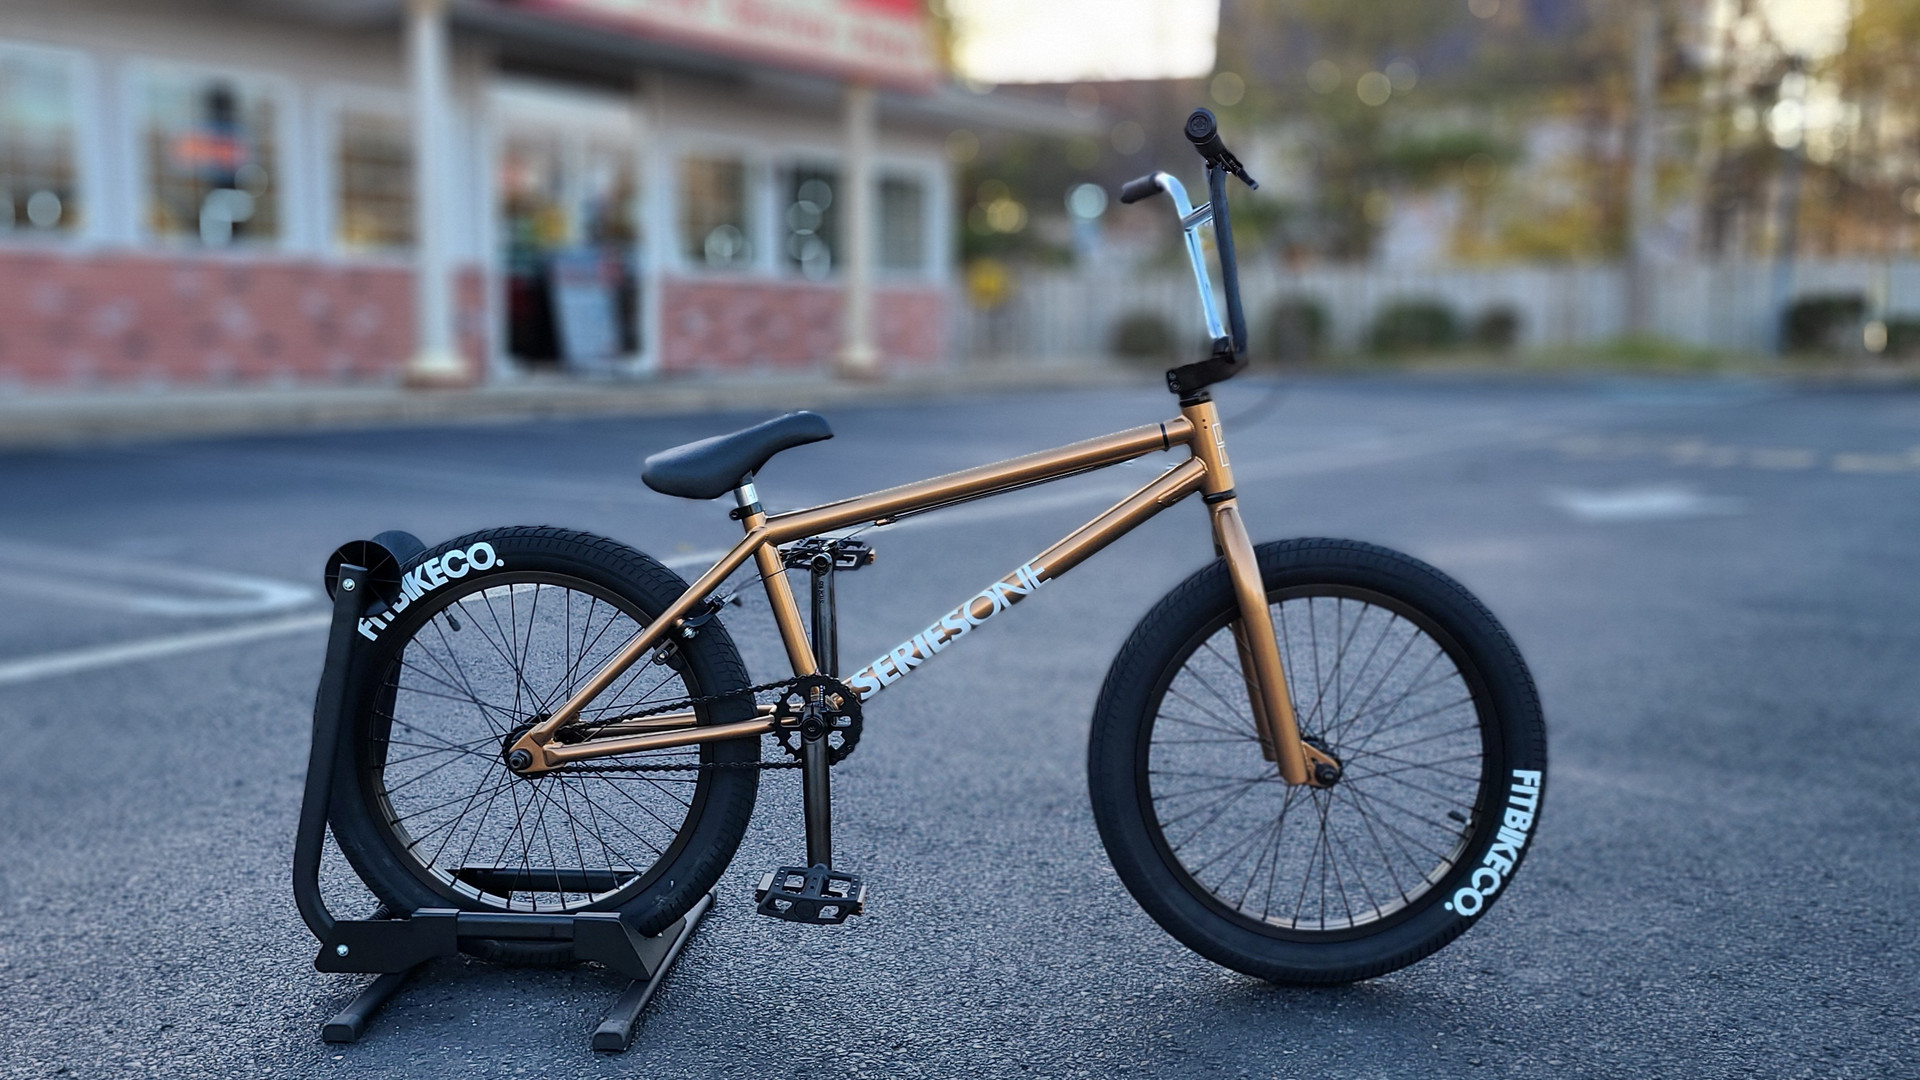 FitBikeCo. SERIES ONE - SOLD OUT